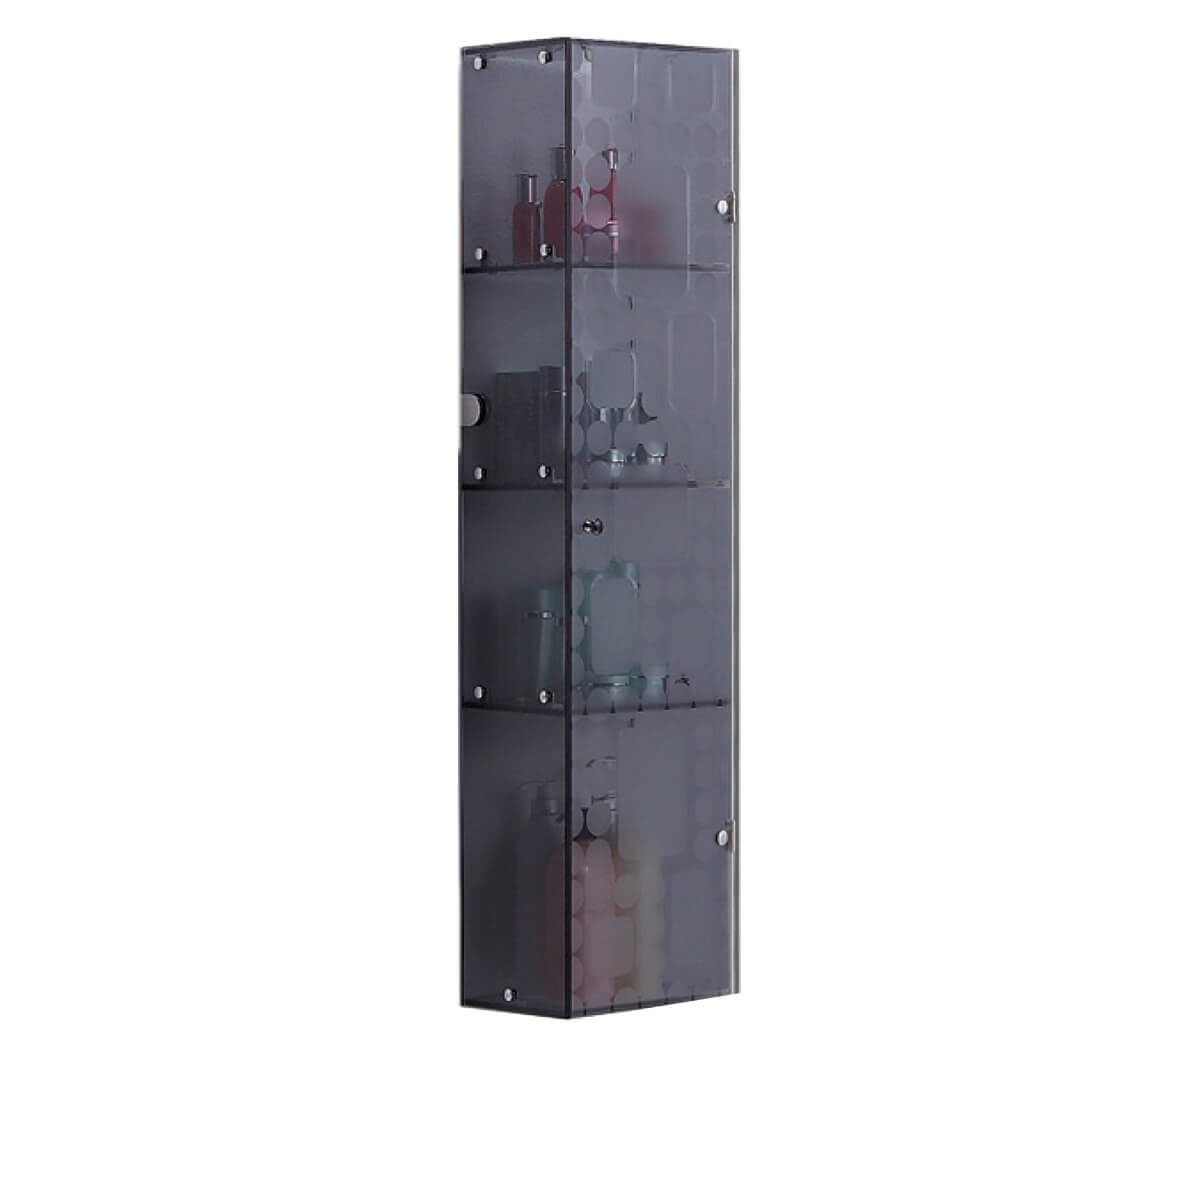 Fab Glass and Mirror Fgm-L-B145G2 Wall Mounted Bathroom Cabinet for Cosmetic Storage, Grey by Fab Glass and Mirror